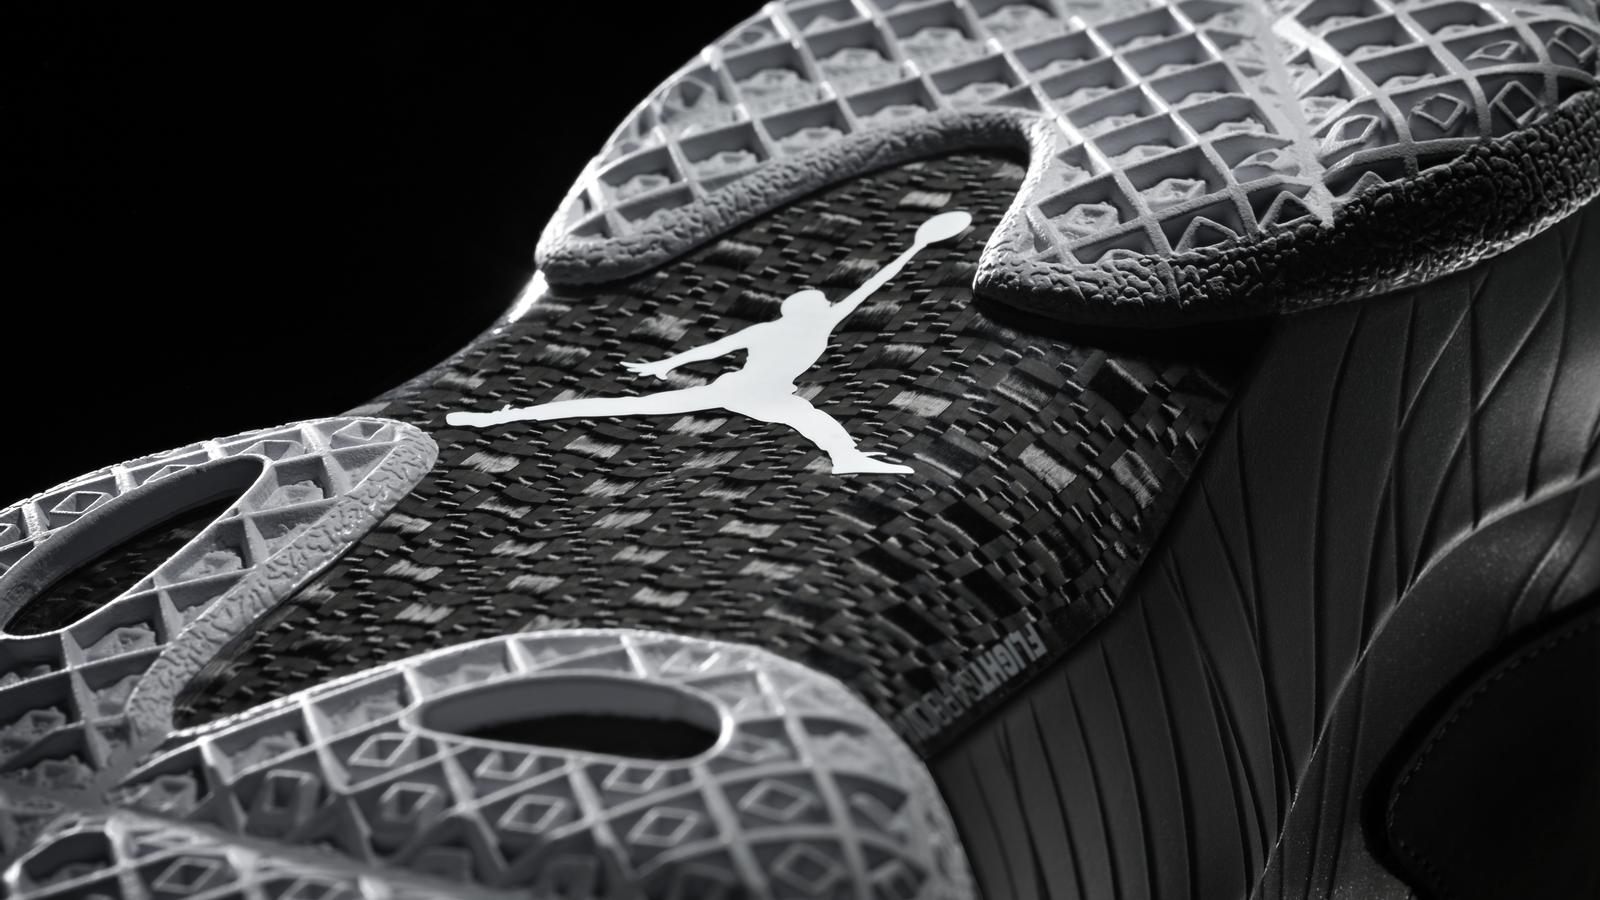 99f968c8e2a9 Prepare for Takeoff with Launch of AIR JORDAN 2012 - Nike News